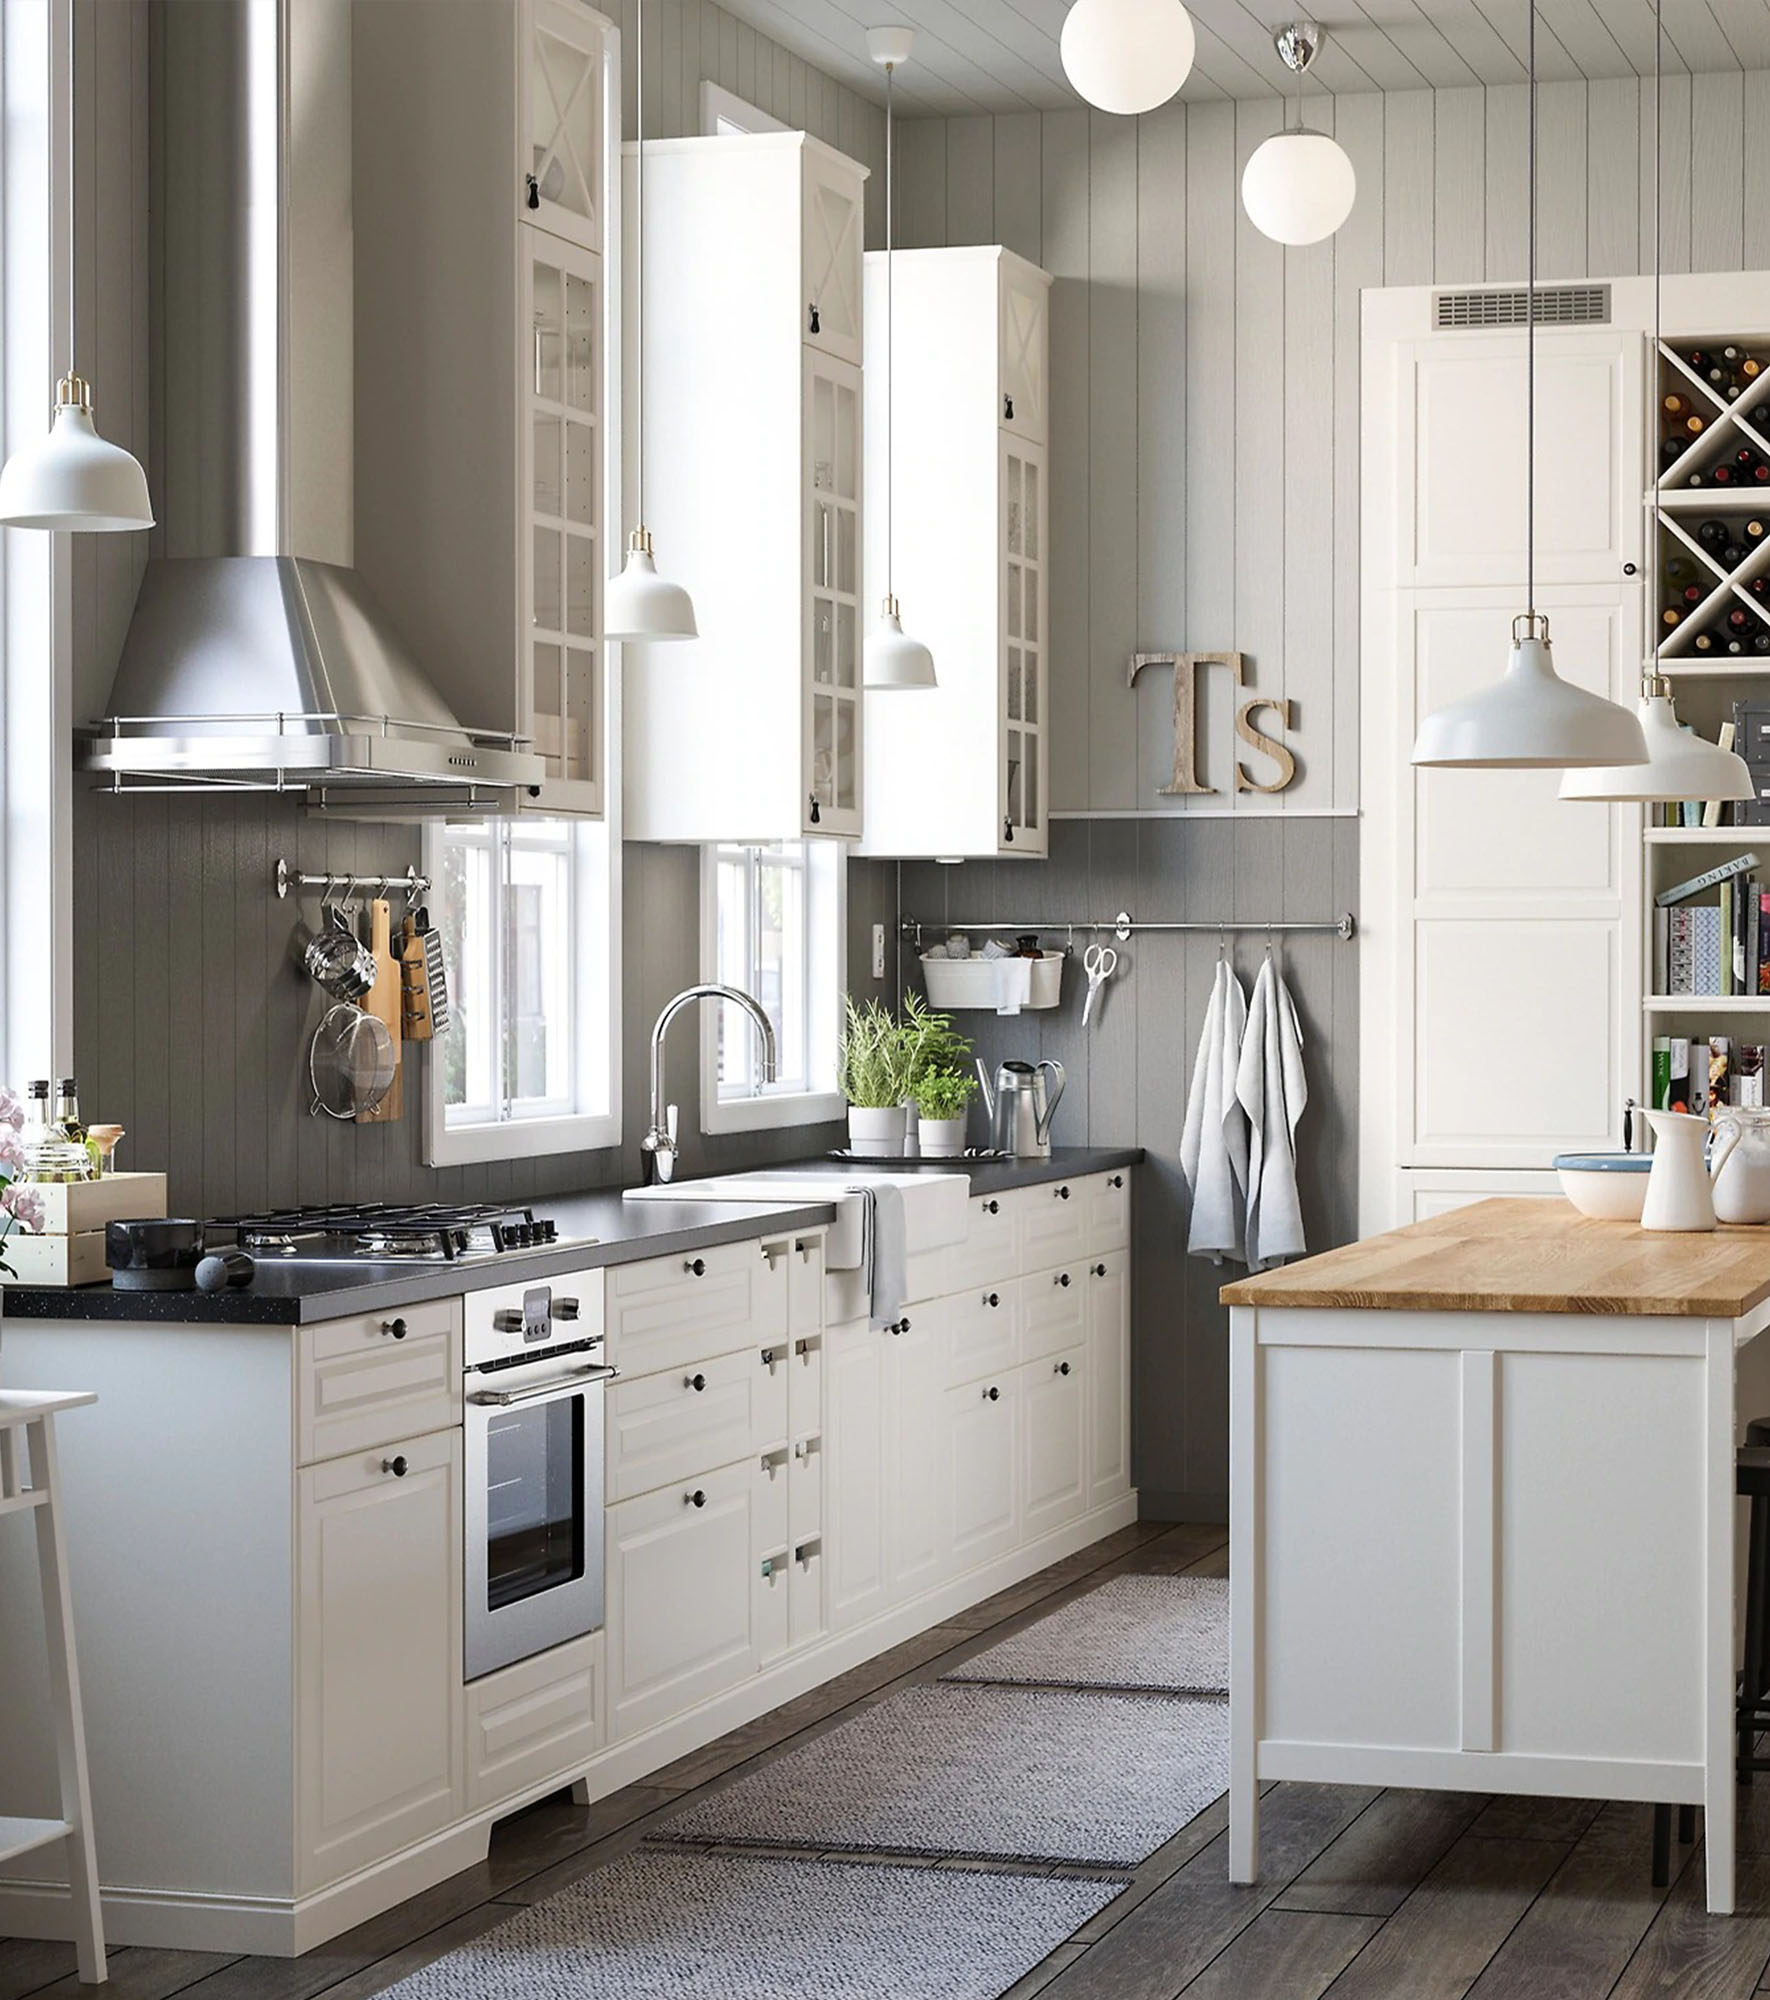 Discount Kitchen Cabinets Portland Oregon: Portland Glass Blocks, Shower Doors, Countertops, Tile